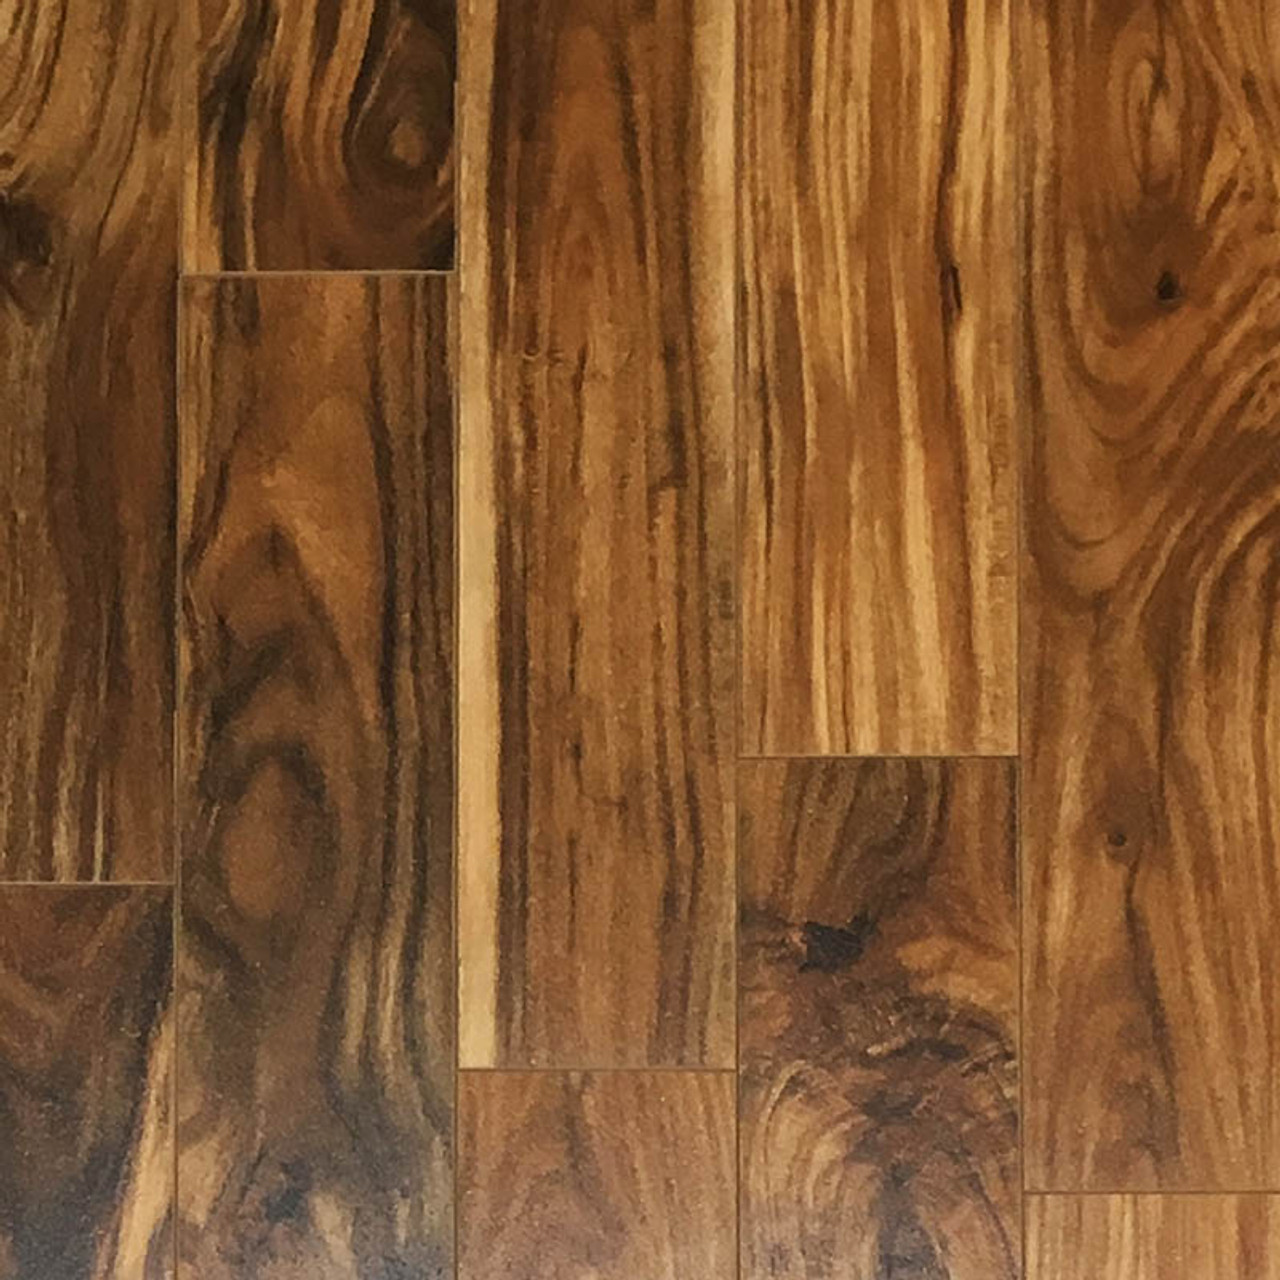 12MM Mesquite Laminate Flooring | Attached Underpad | Studio + | 16.48 Sq.Ft. Per Box | Sold by the Box